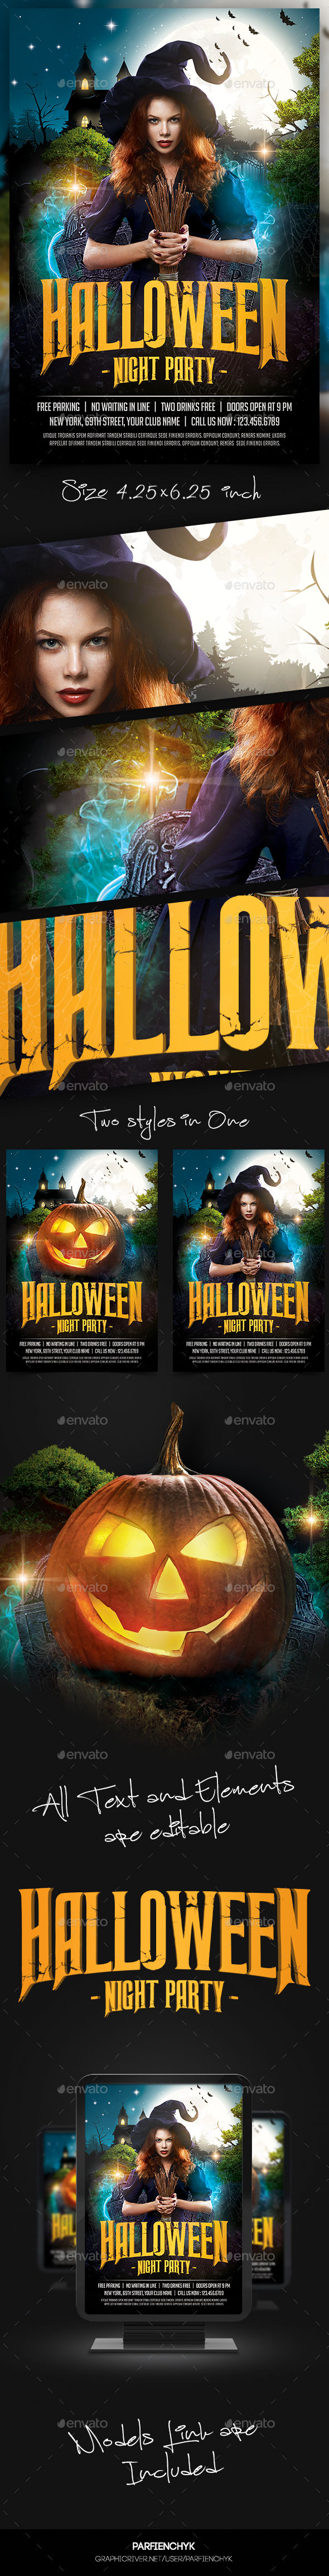 Halloween Party Flyer Template by Parfienchyk (Halloween party flyer)